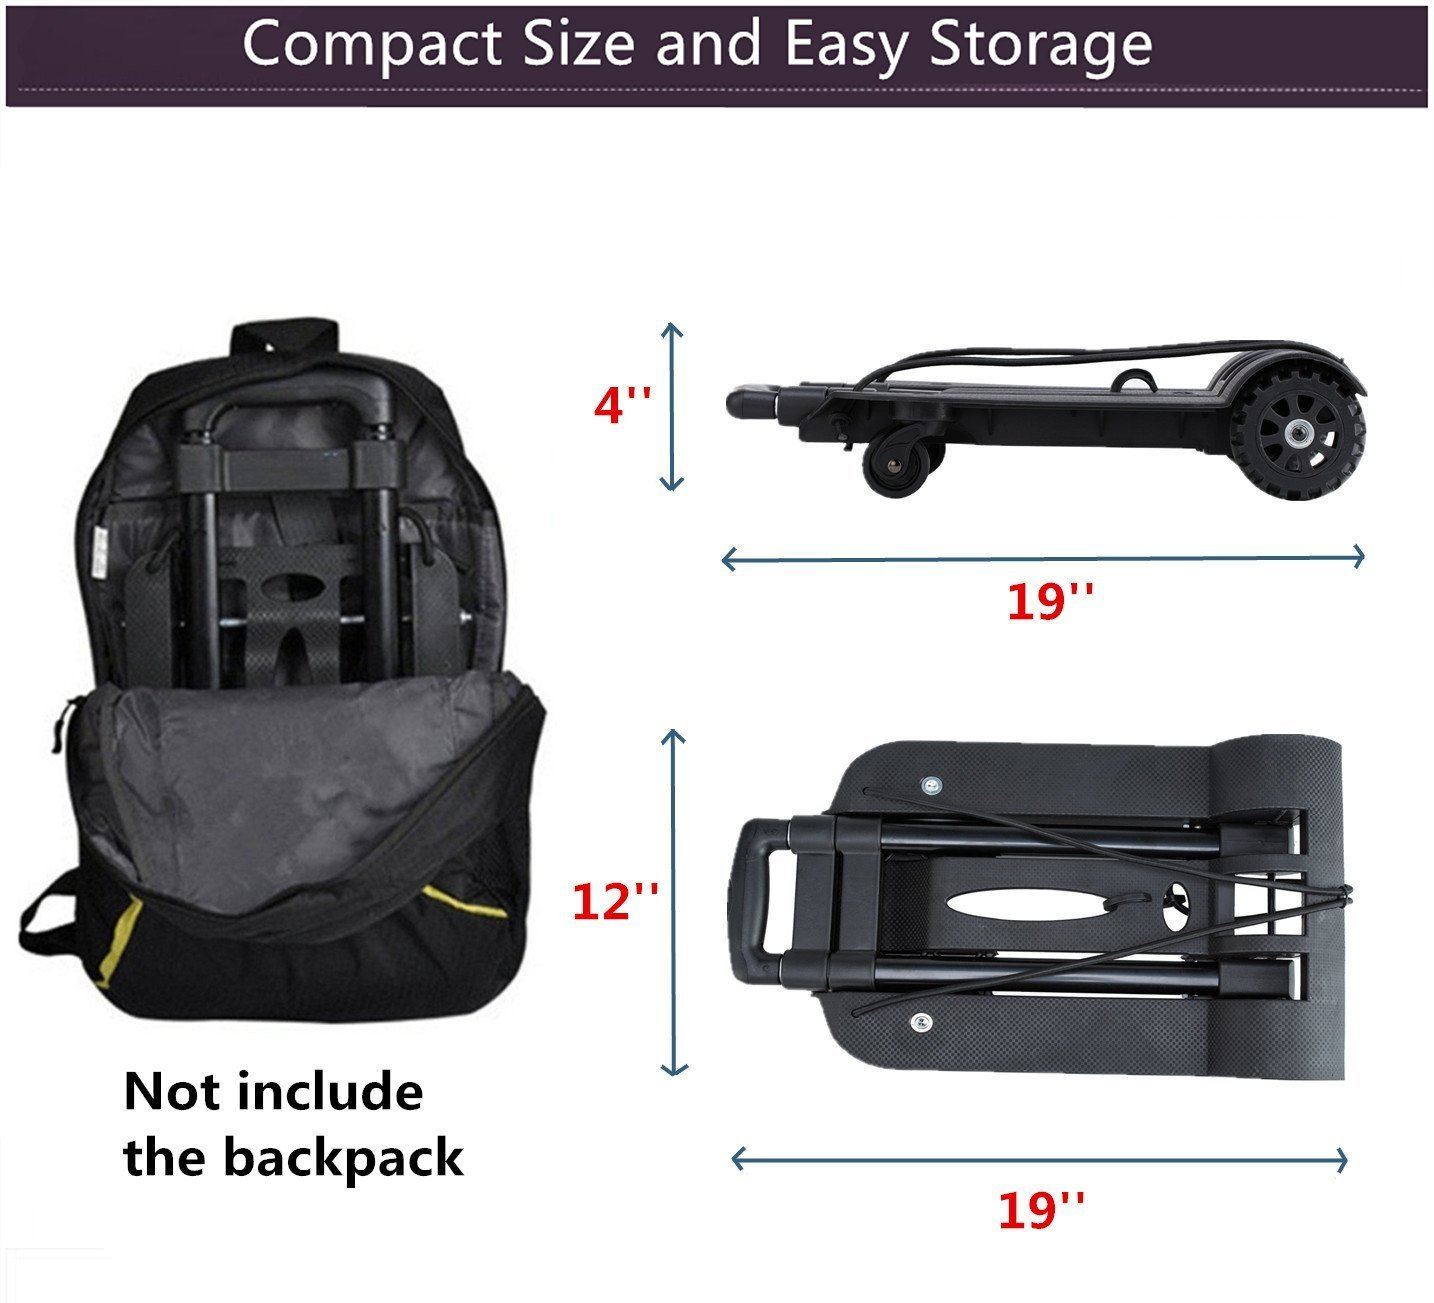 Folding Hand Truck, 75 Kg/165 lbs Heavy Duty Solid Construction Utility Cart Compact and Lightweight for Luggage, Personal, Travel, Auto, Moving and Office Use - Portable Fold Up Dolly(4 wheel-roate) by ROYI (Image #6)